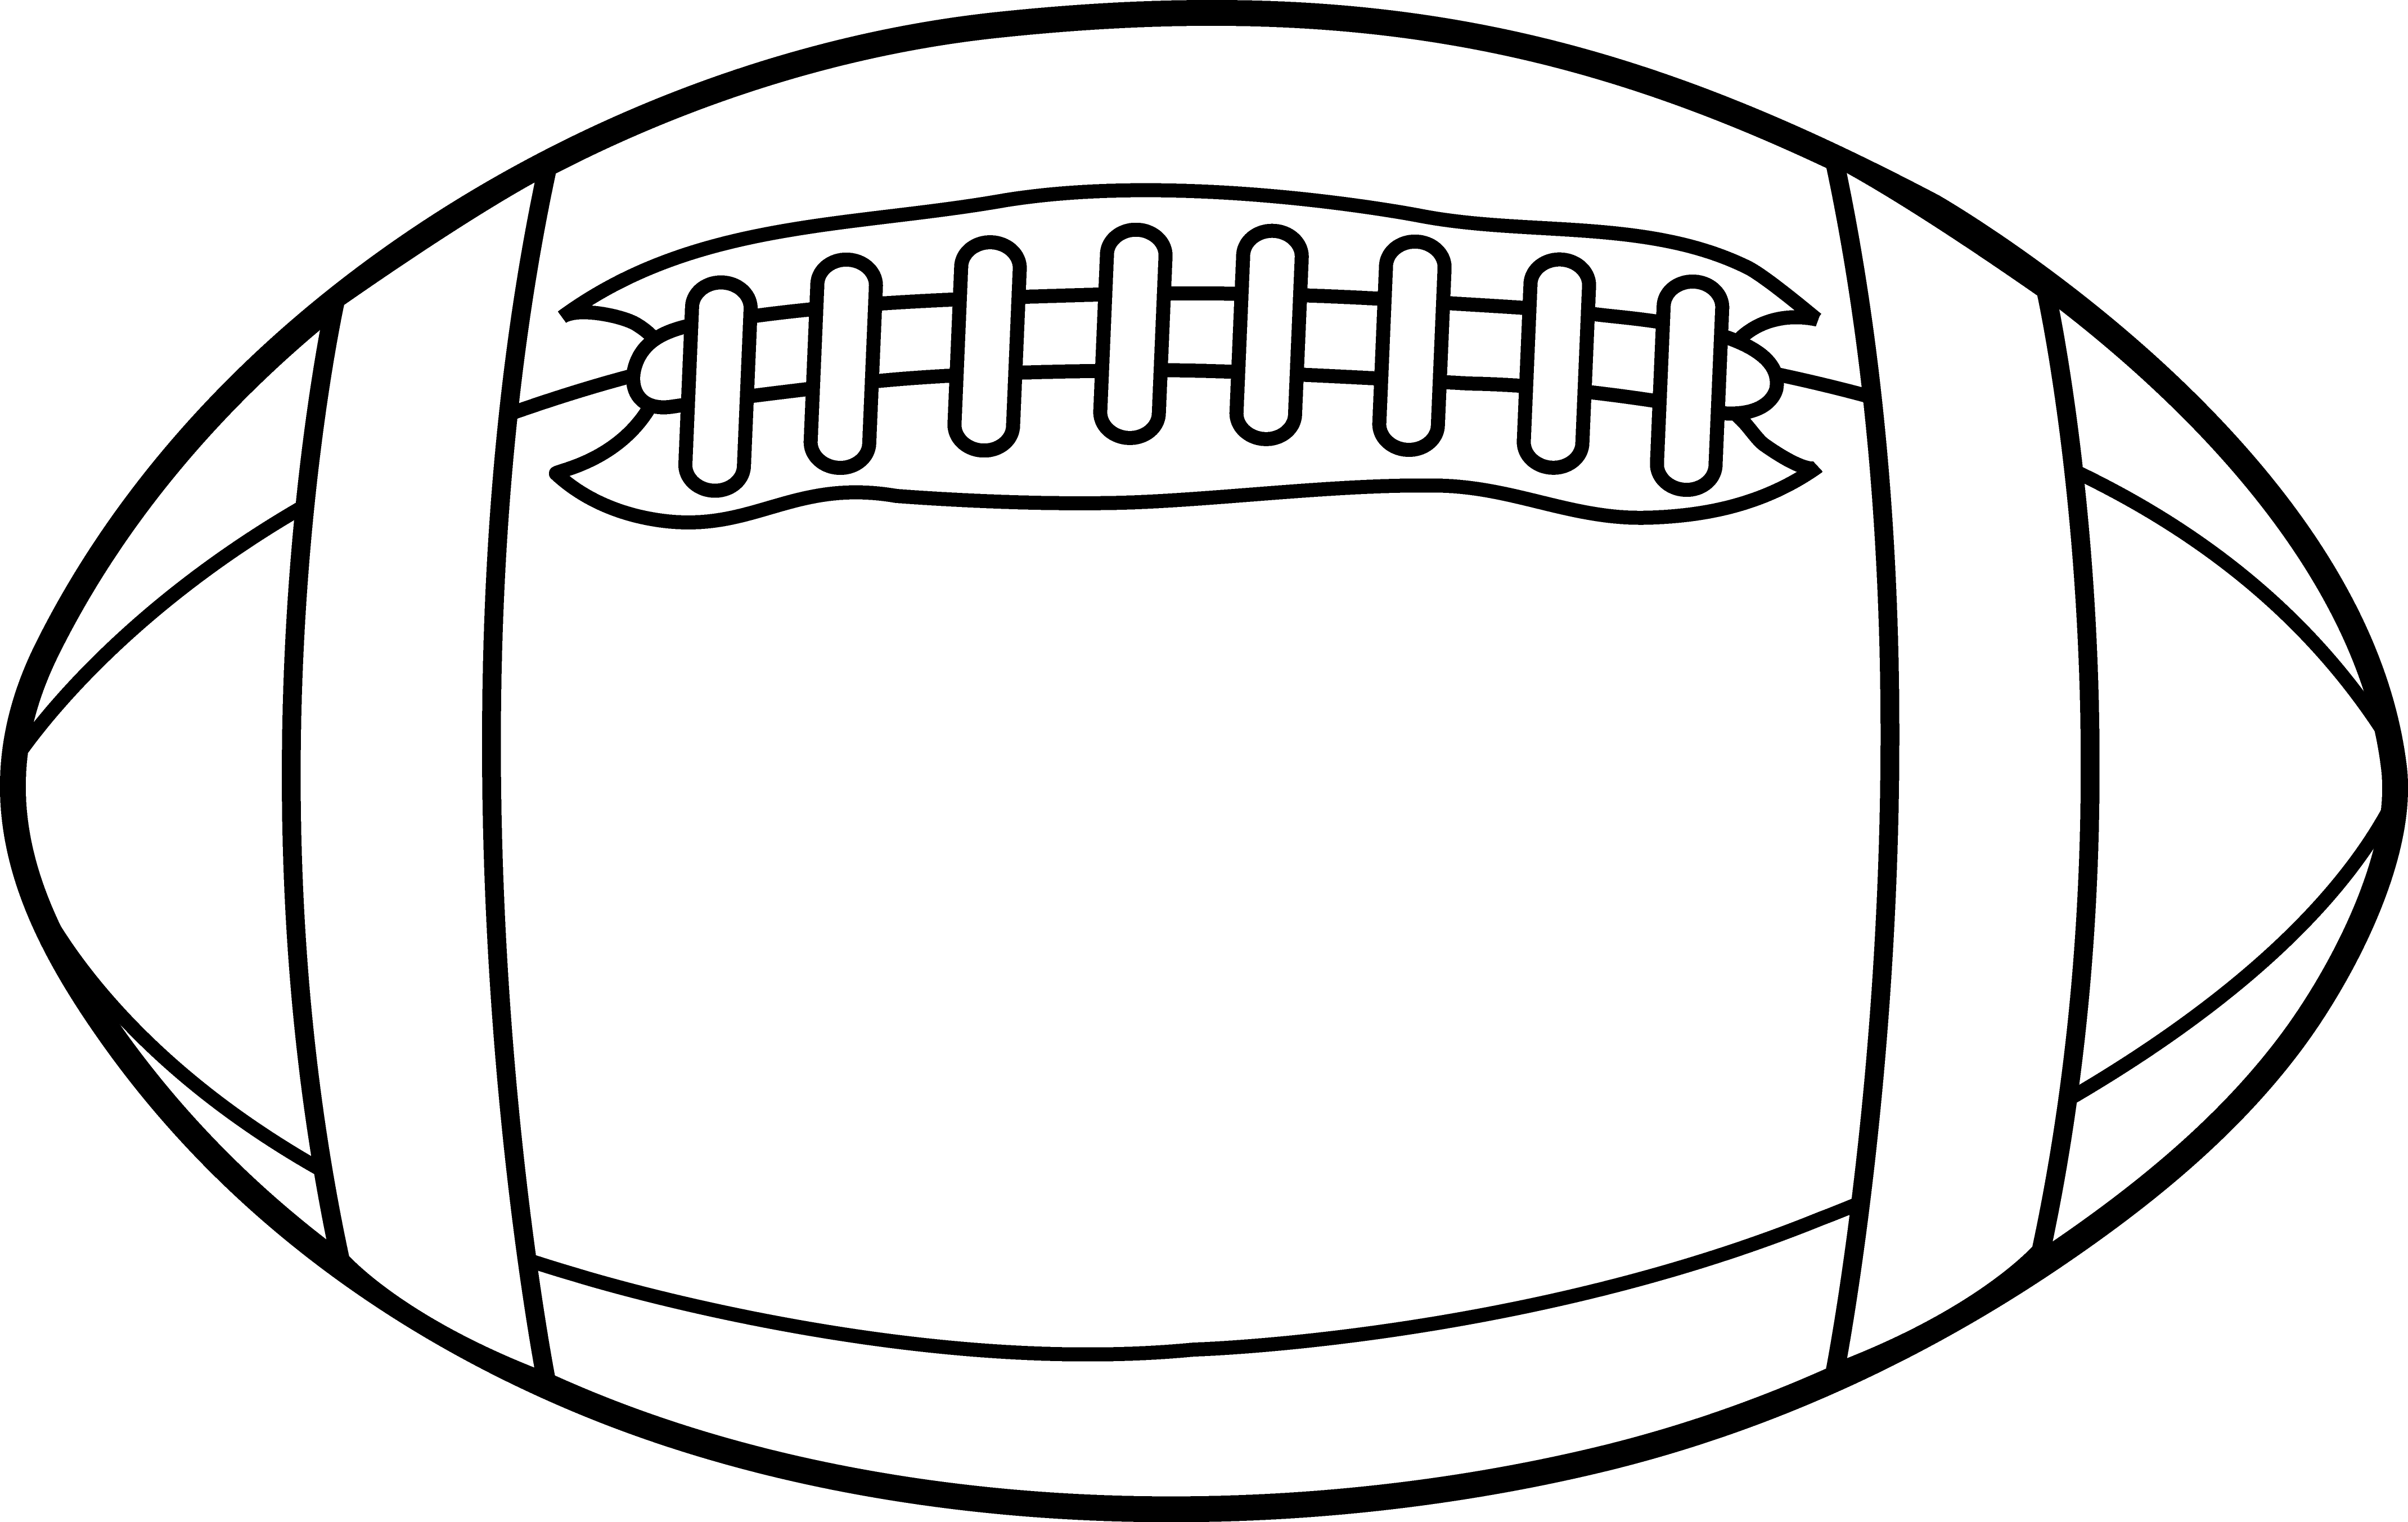 Football or Rugby Ball Line Art - Free Clip Art